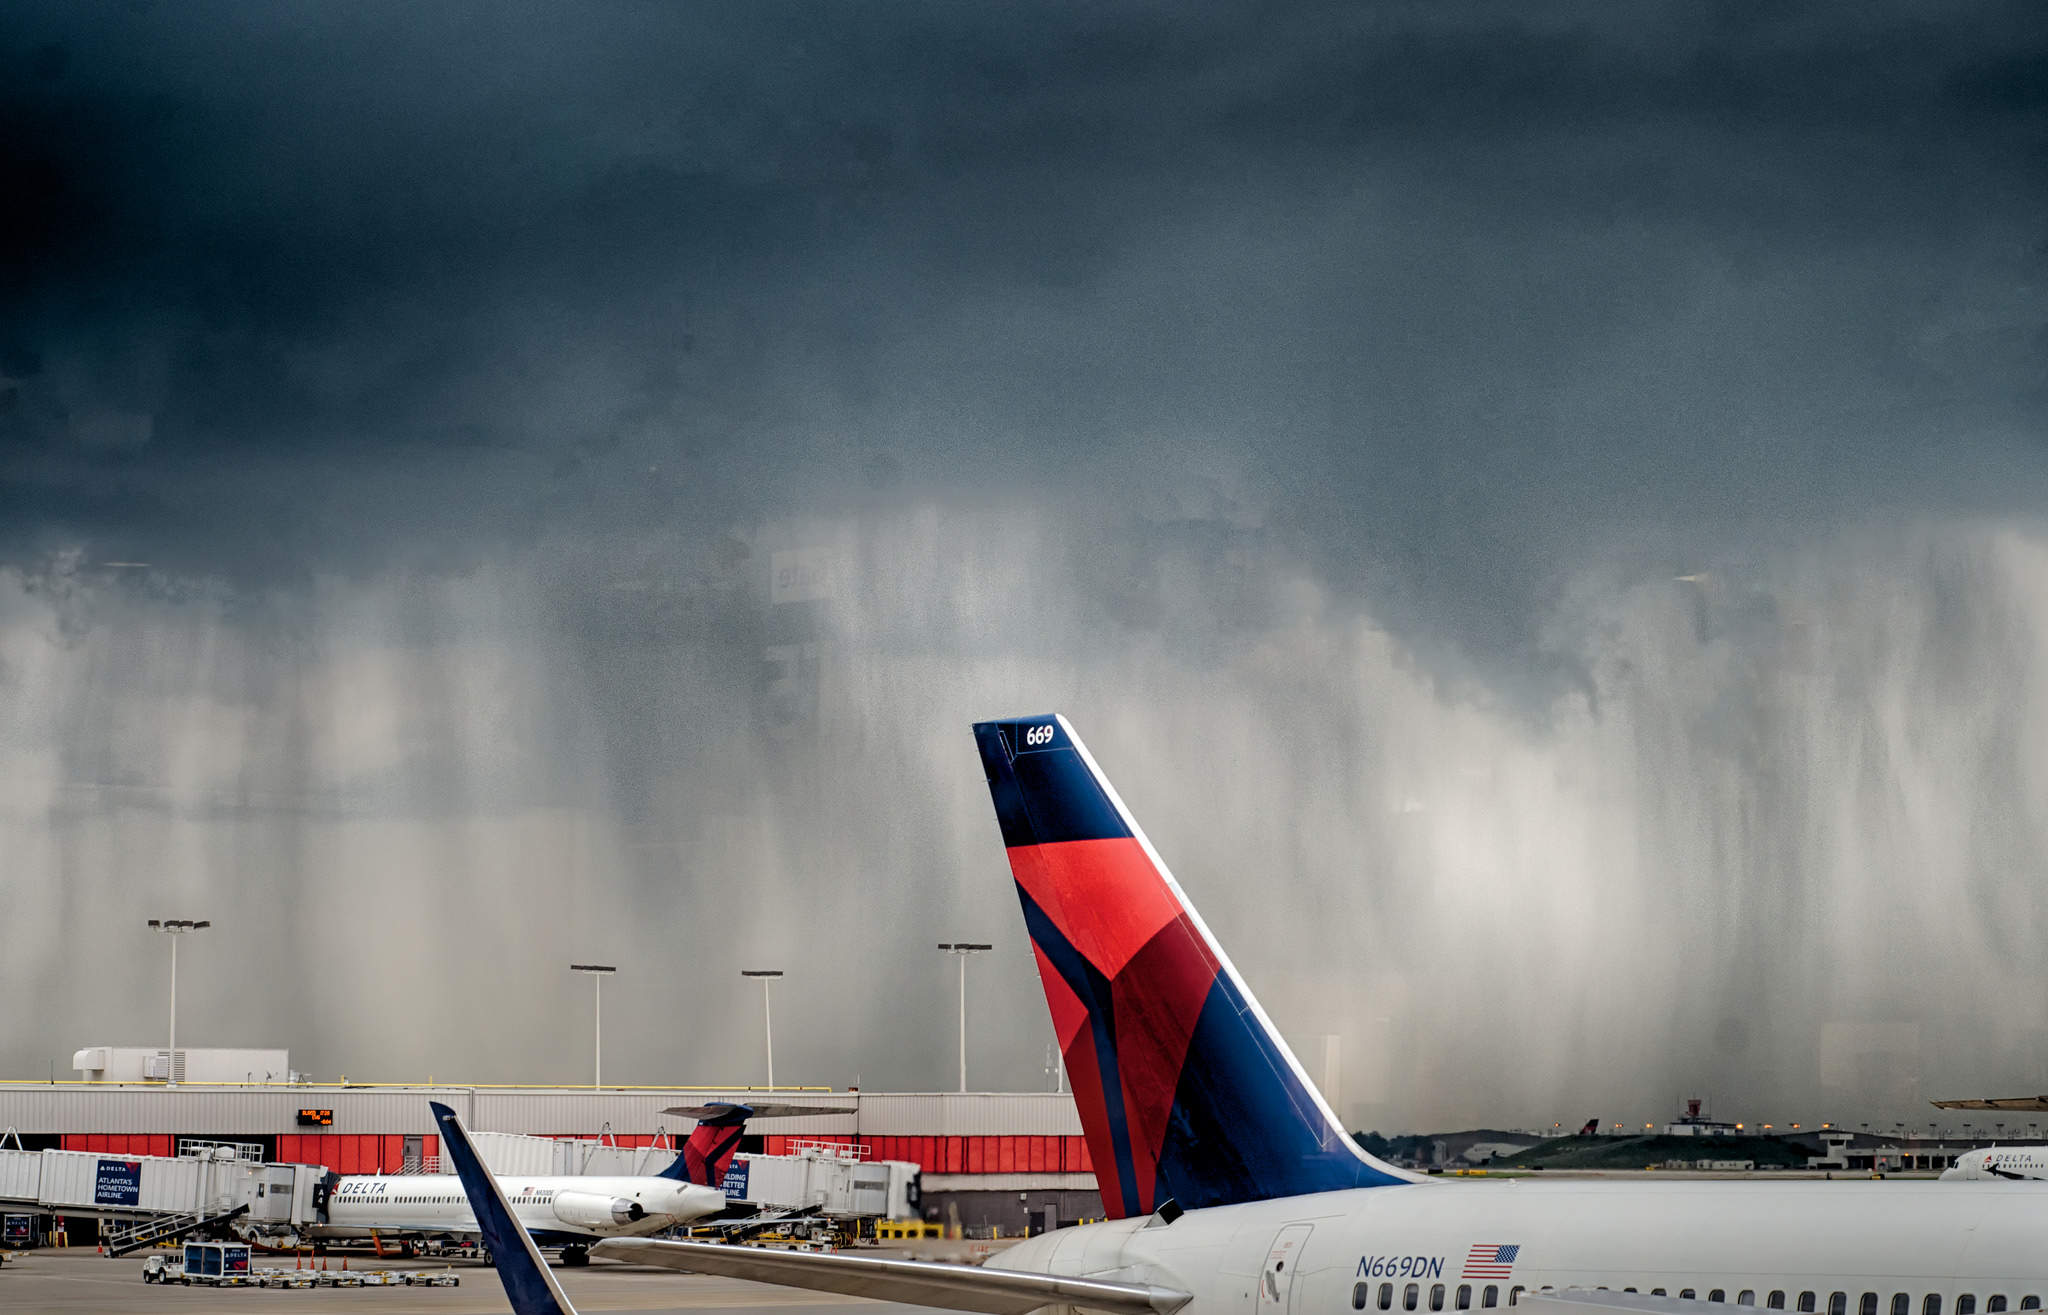 Airport weather